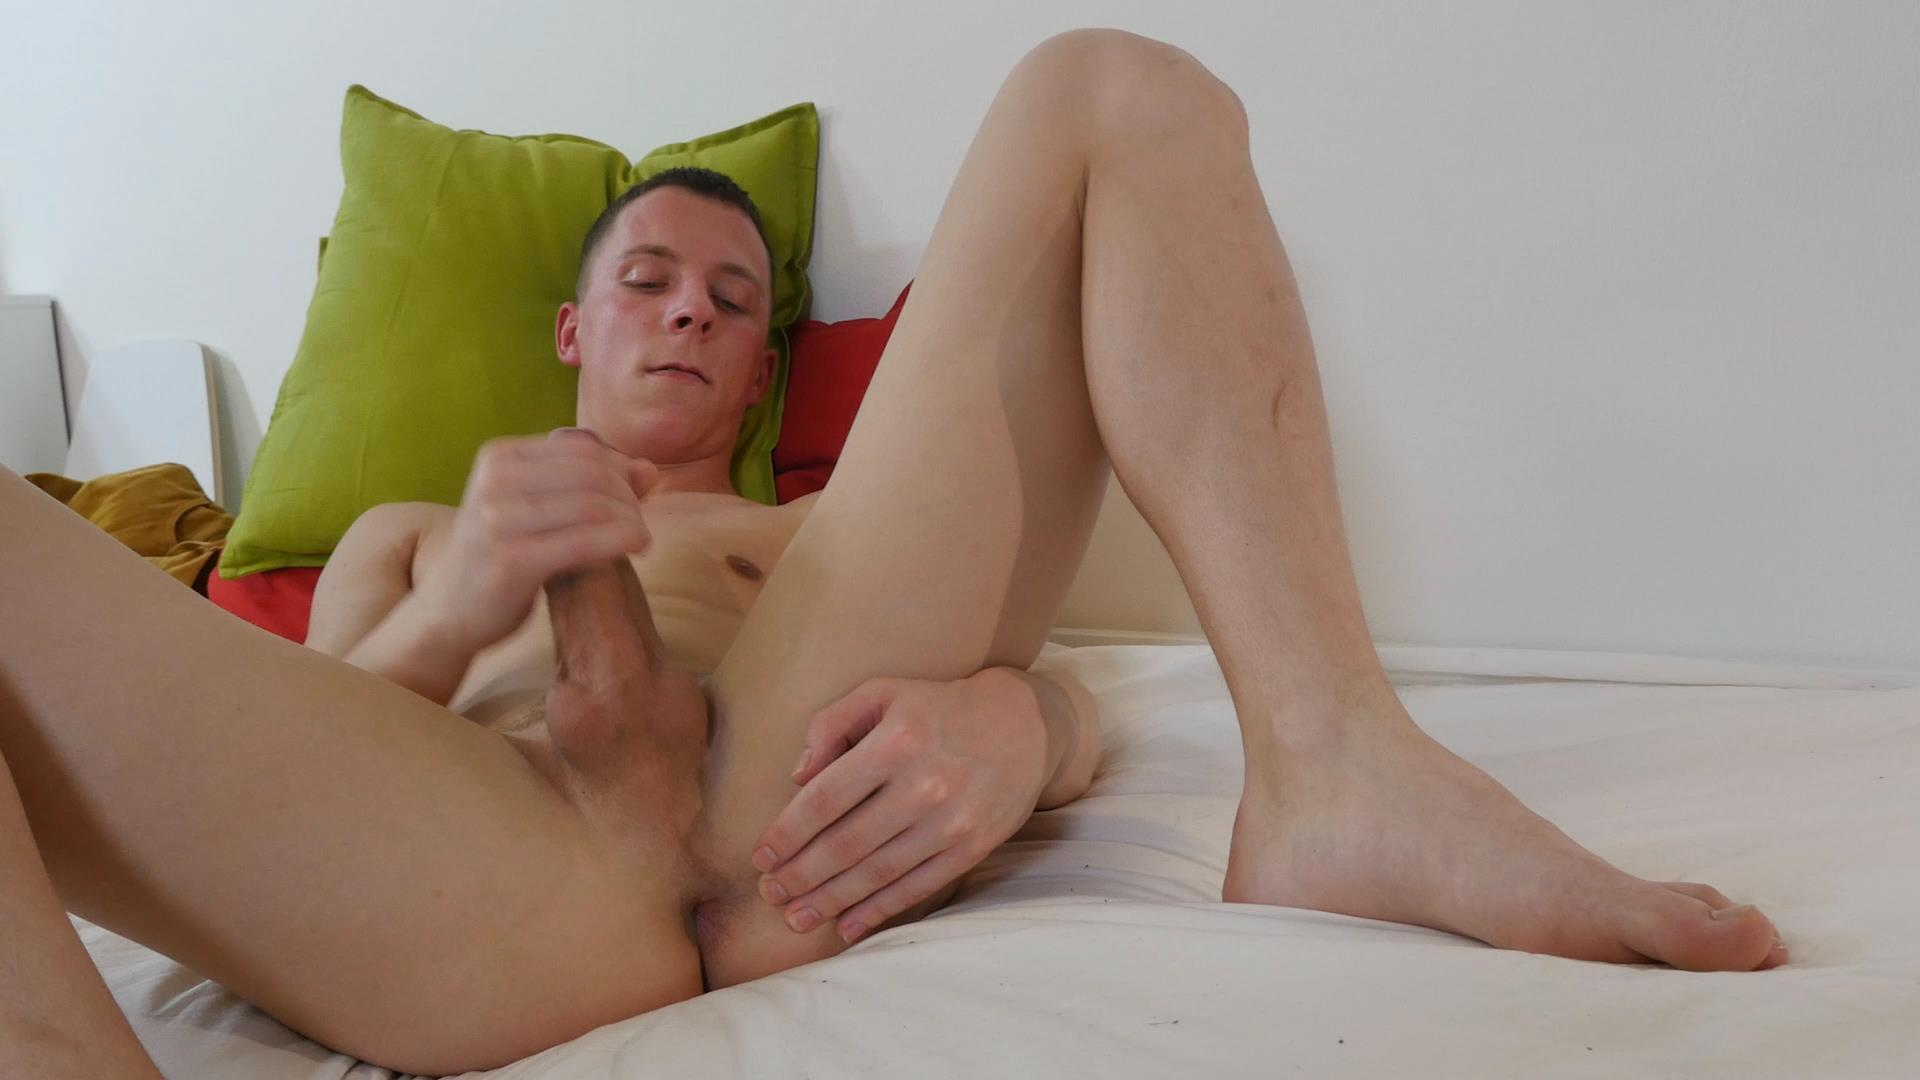 Twink-Boys-Party-Andrew-Kitt-Twink-With-Big-Uncut-Cock-Masturbation-Amateur-Gay-Porn-18 Twink Andrew Kitt Rubbing A Load Out Of His Big Uncut Cock